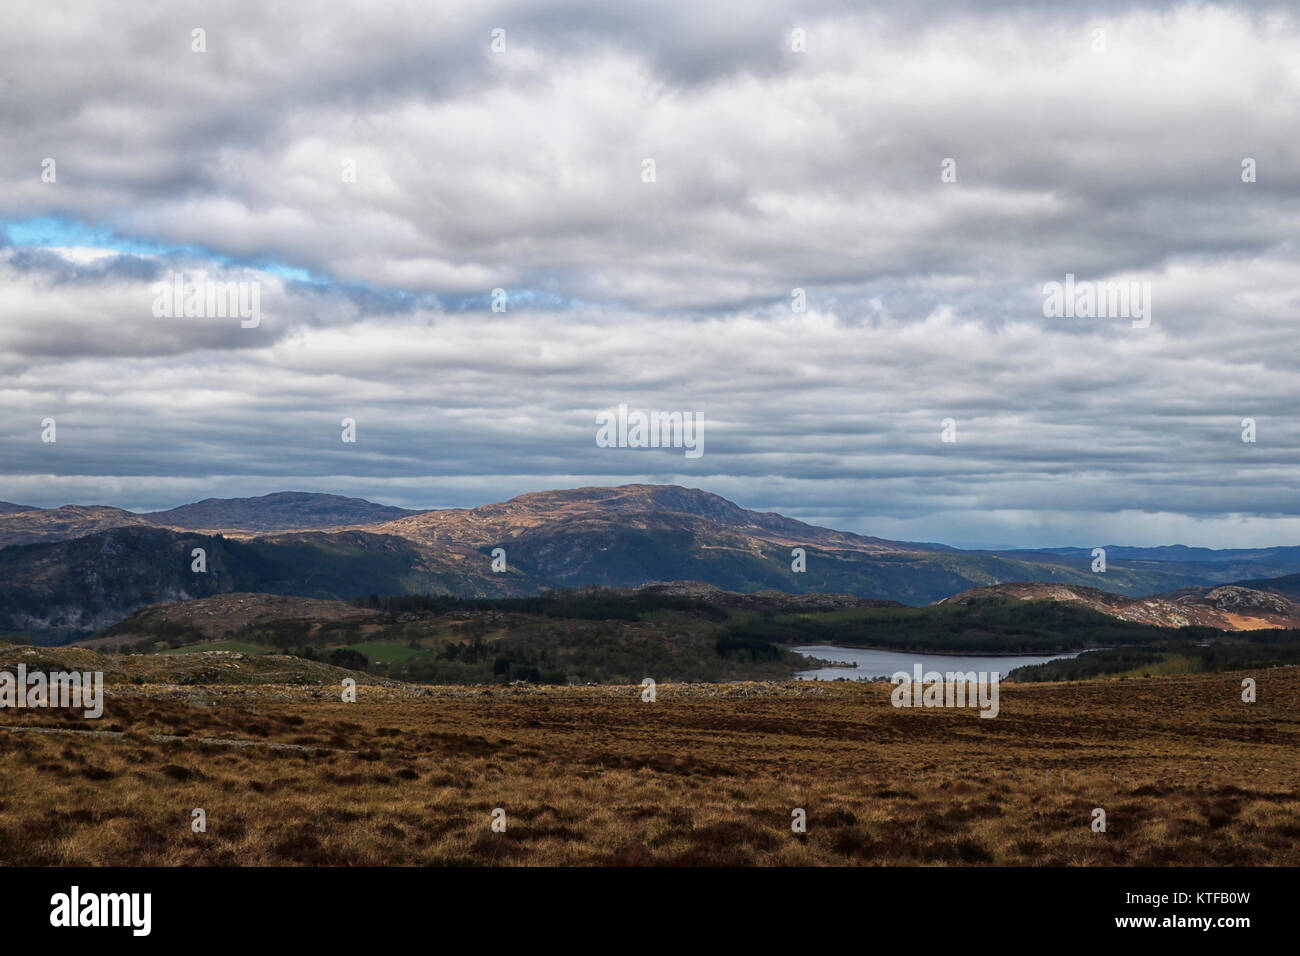 Scottish Highlands in Springtime looking over moorlands and across Loch ness and towards mountains beyond, - Stock Image